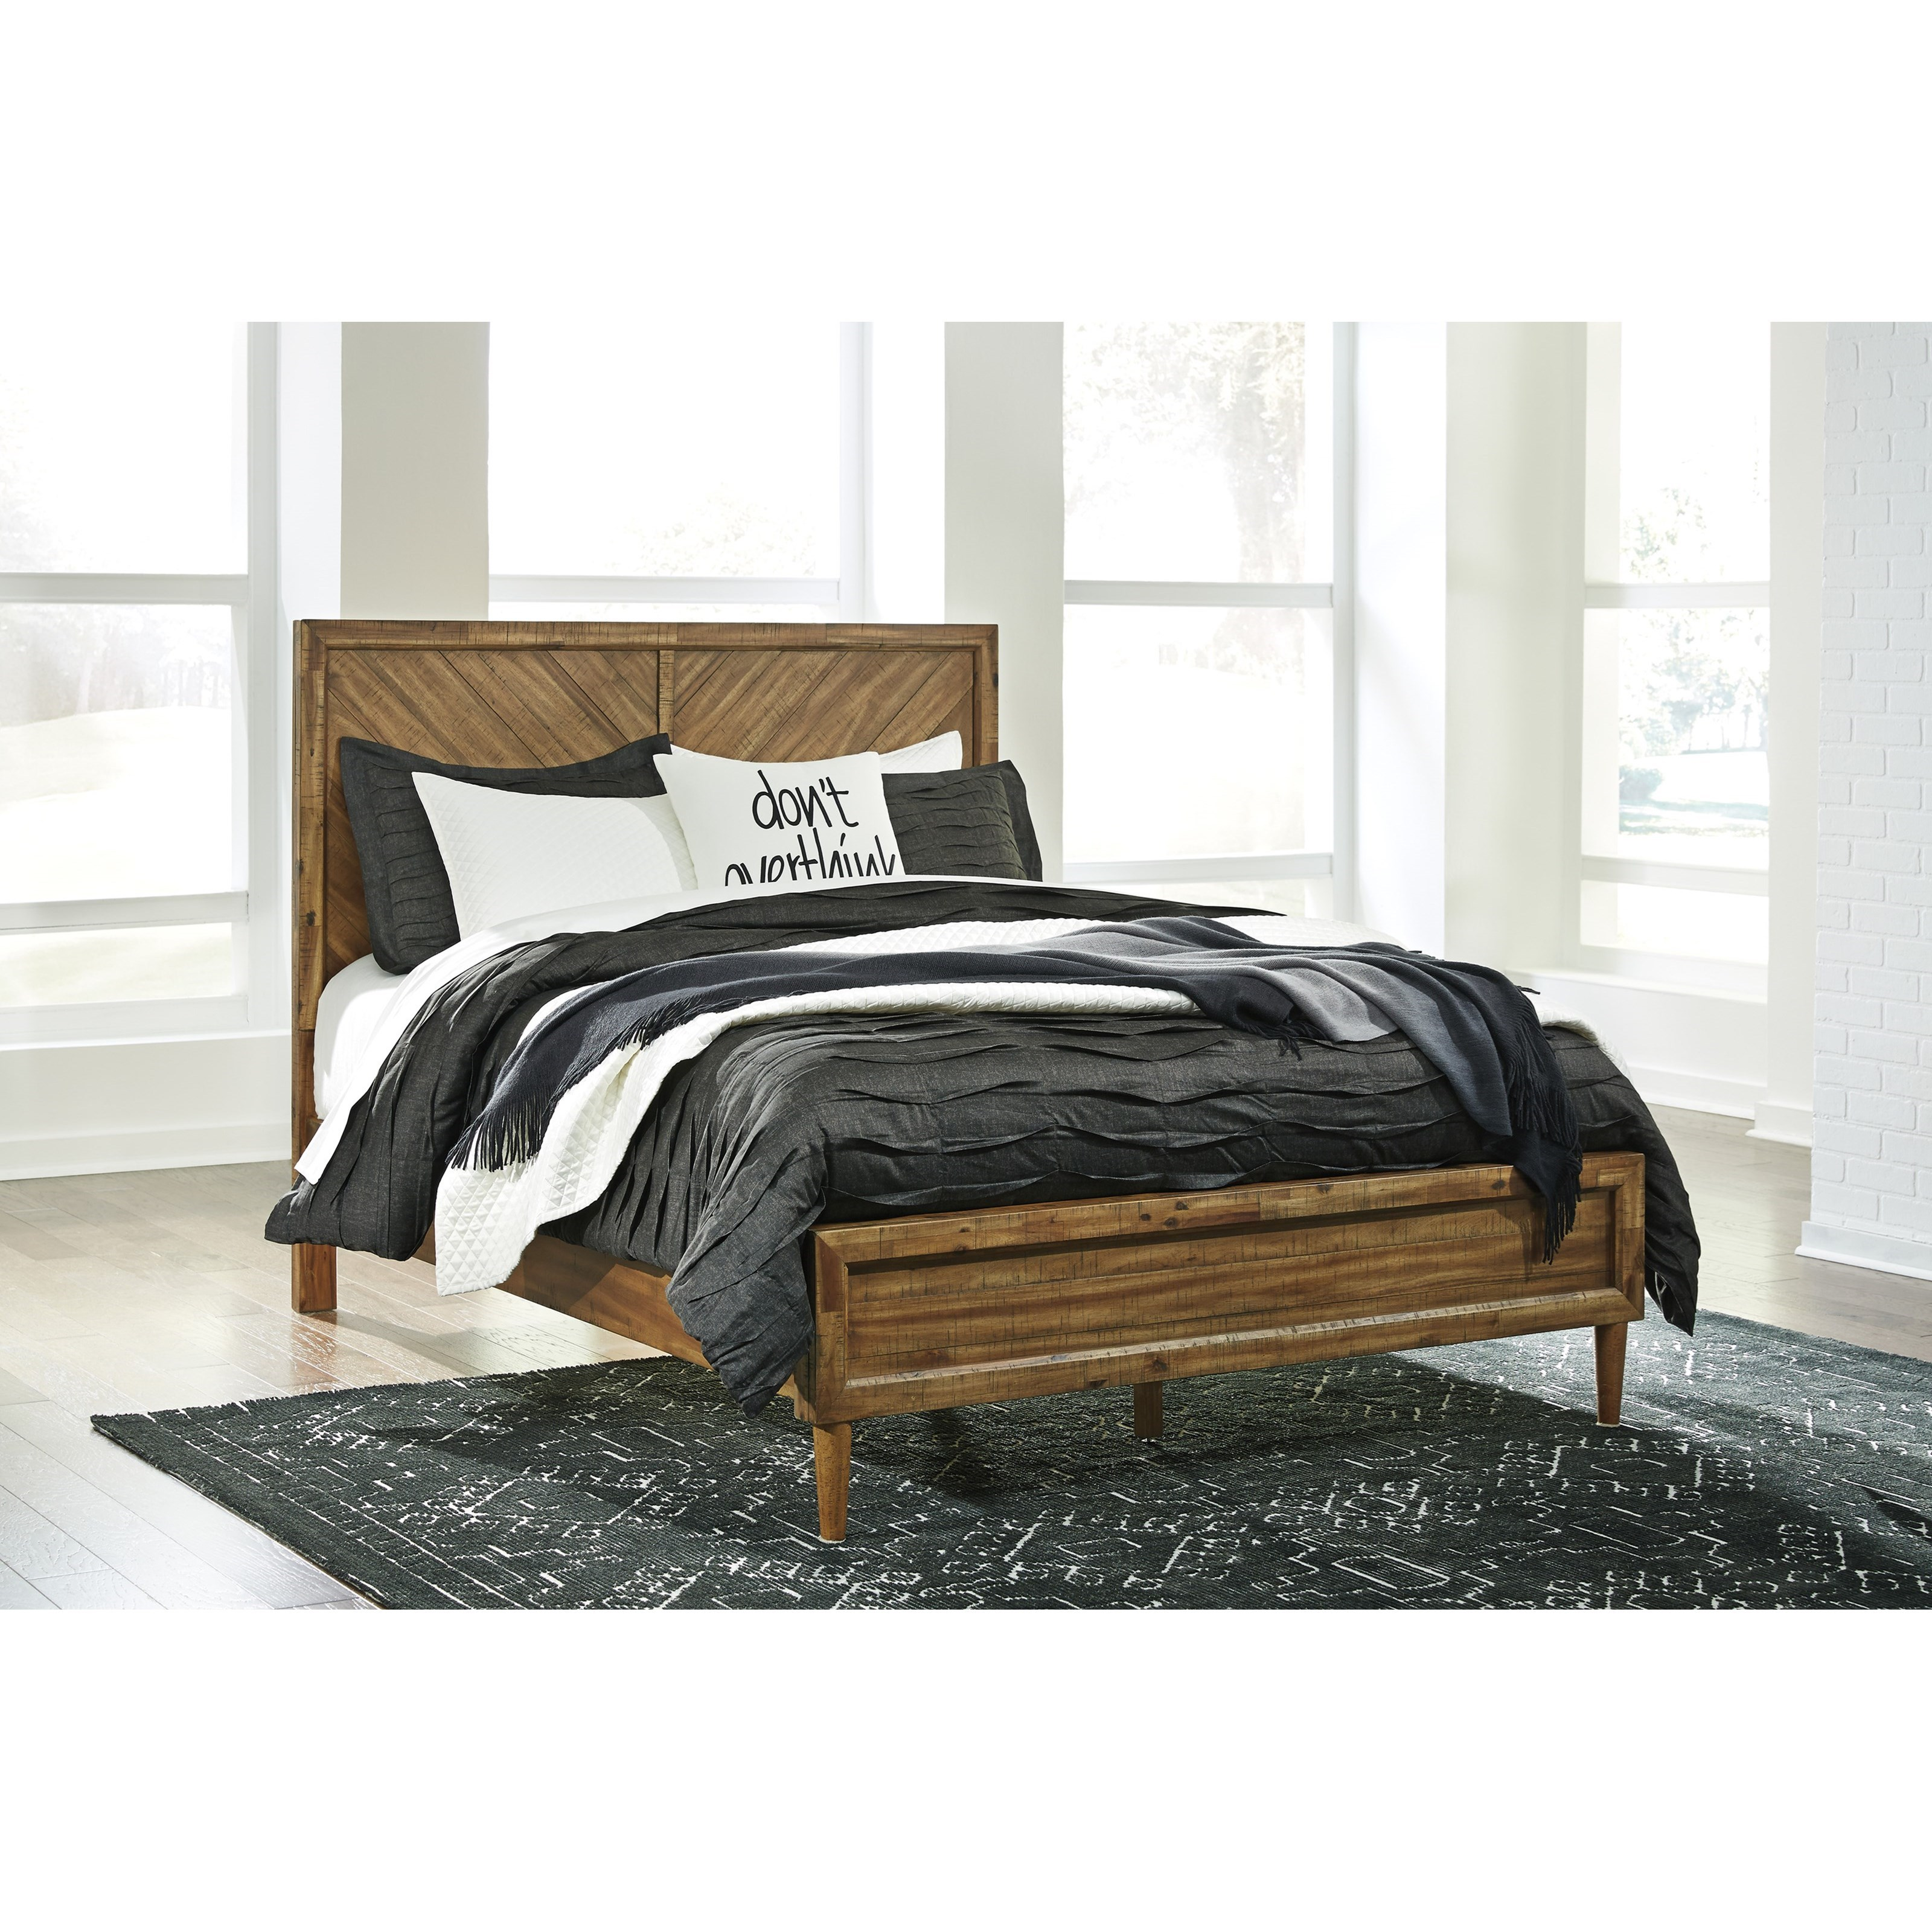 Signature Design by Ashley Broshtan California King Panel Bed - Item Number: B518-58+94+56